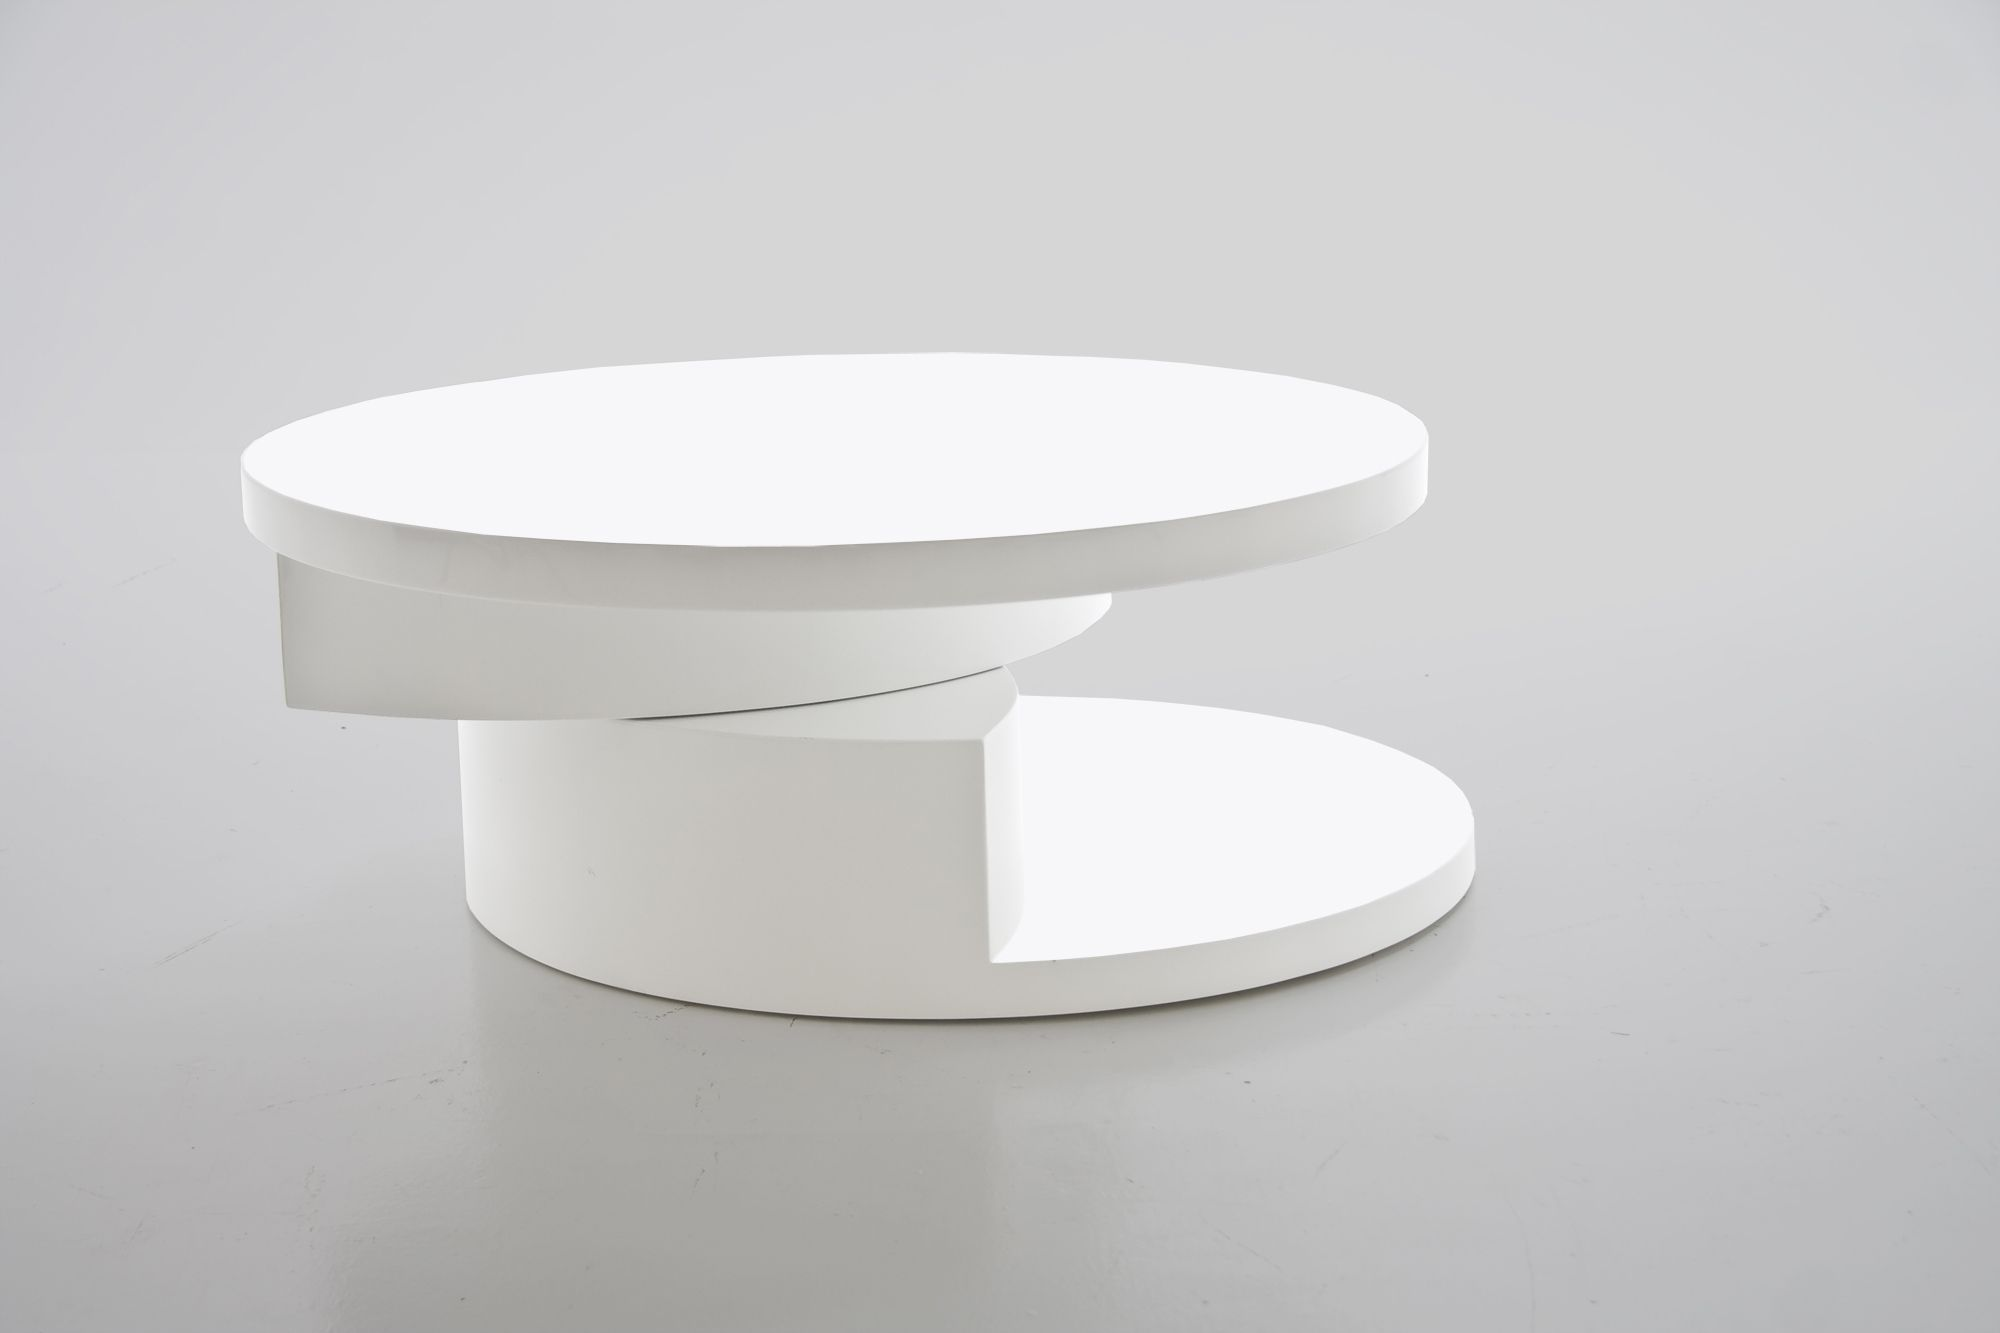 Some Round Coffee Tables Can Have An Unusual Form And Shape Unique And Elegant White Roun White Round Coffee Table Round Coffee Table Modern Round Coffee Table [ 1333 x 2000 Pixel ]